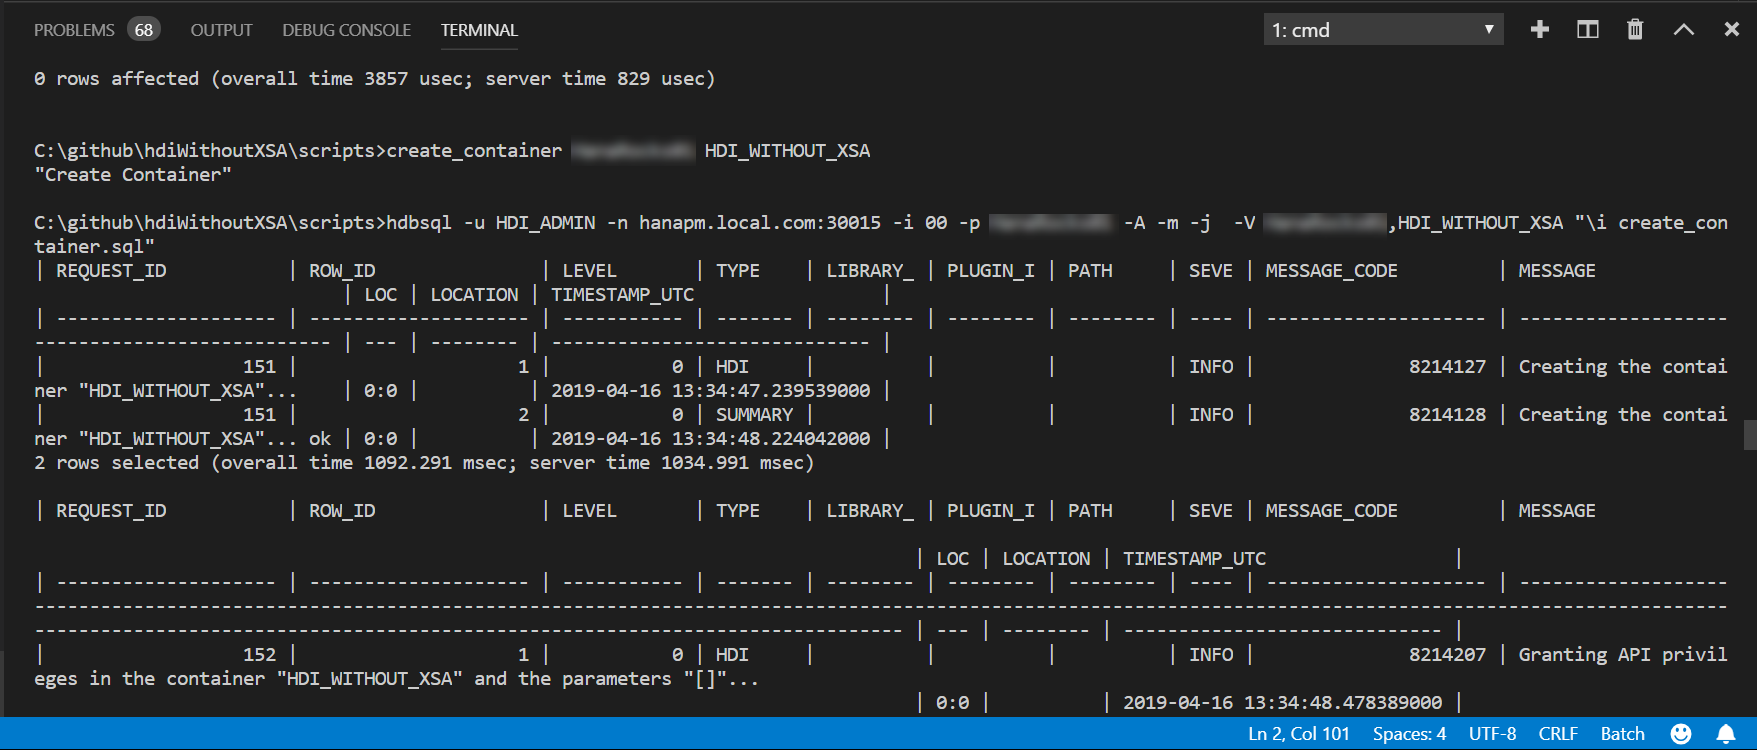 Developing with HANA Deployment Infrastructure (HDI) without XSA/CF